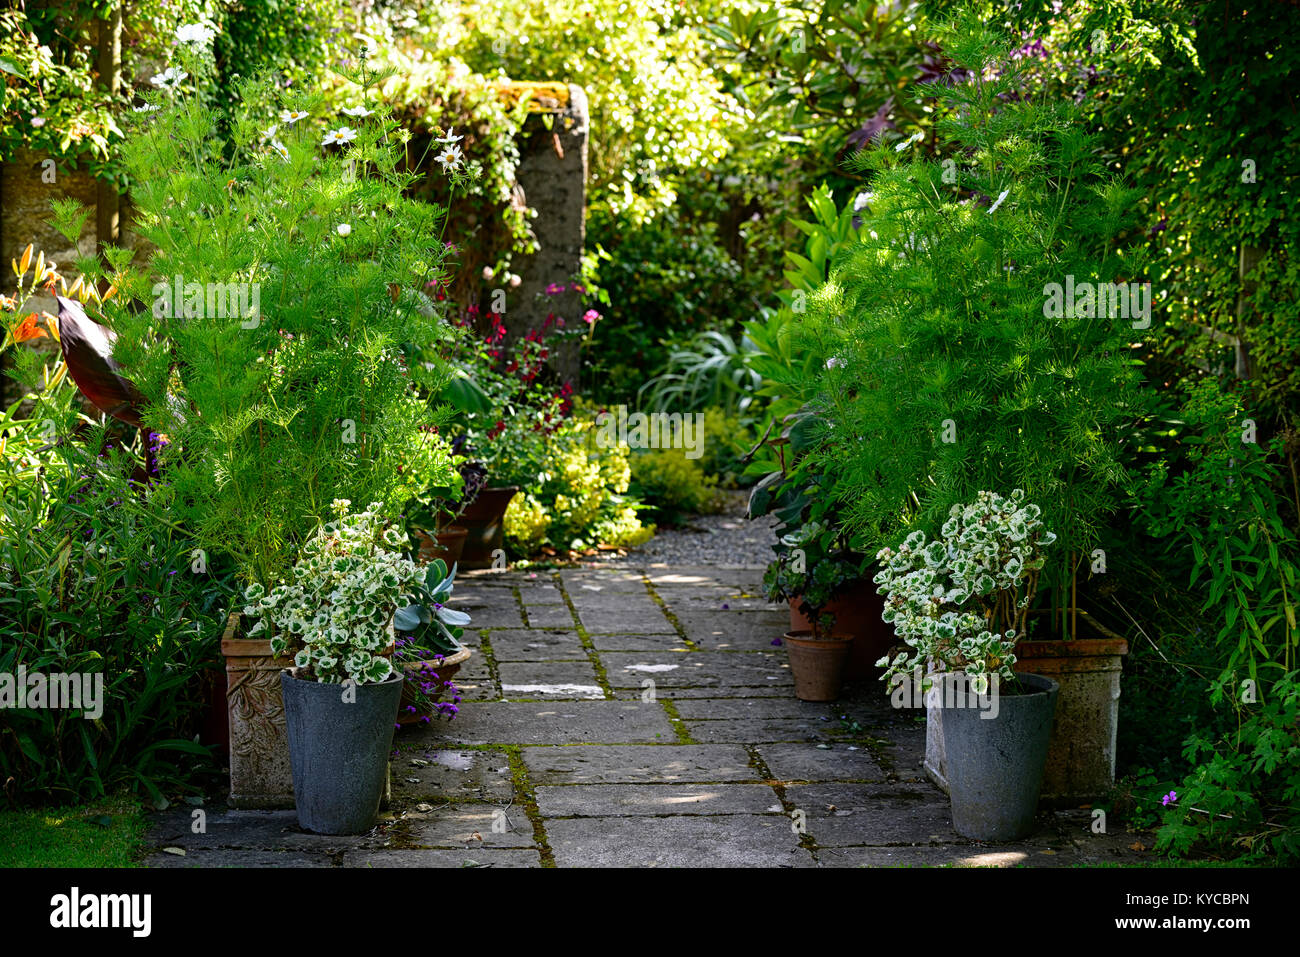 Patio,entrance,pots,containers,cosmos,variegated  Pelargonium,secluded,lush,summer,garden,gardening,The Bay Garden,Camolin,RM  Floral